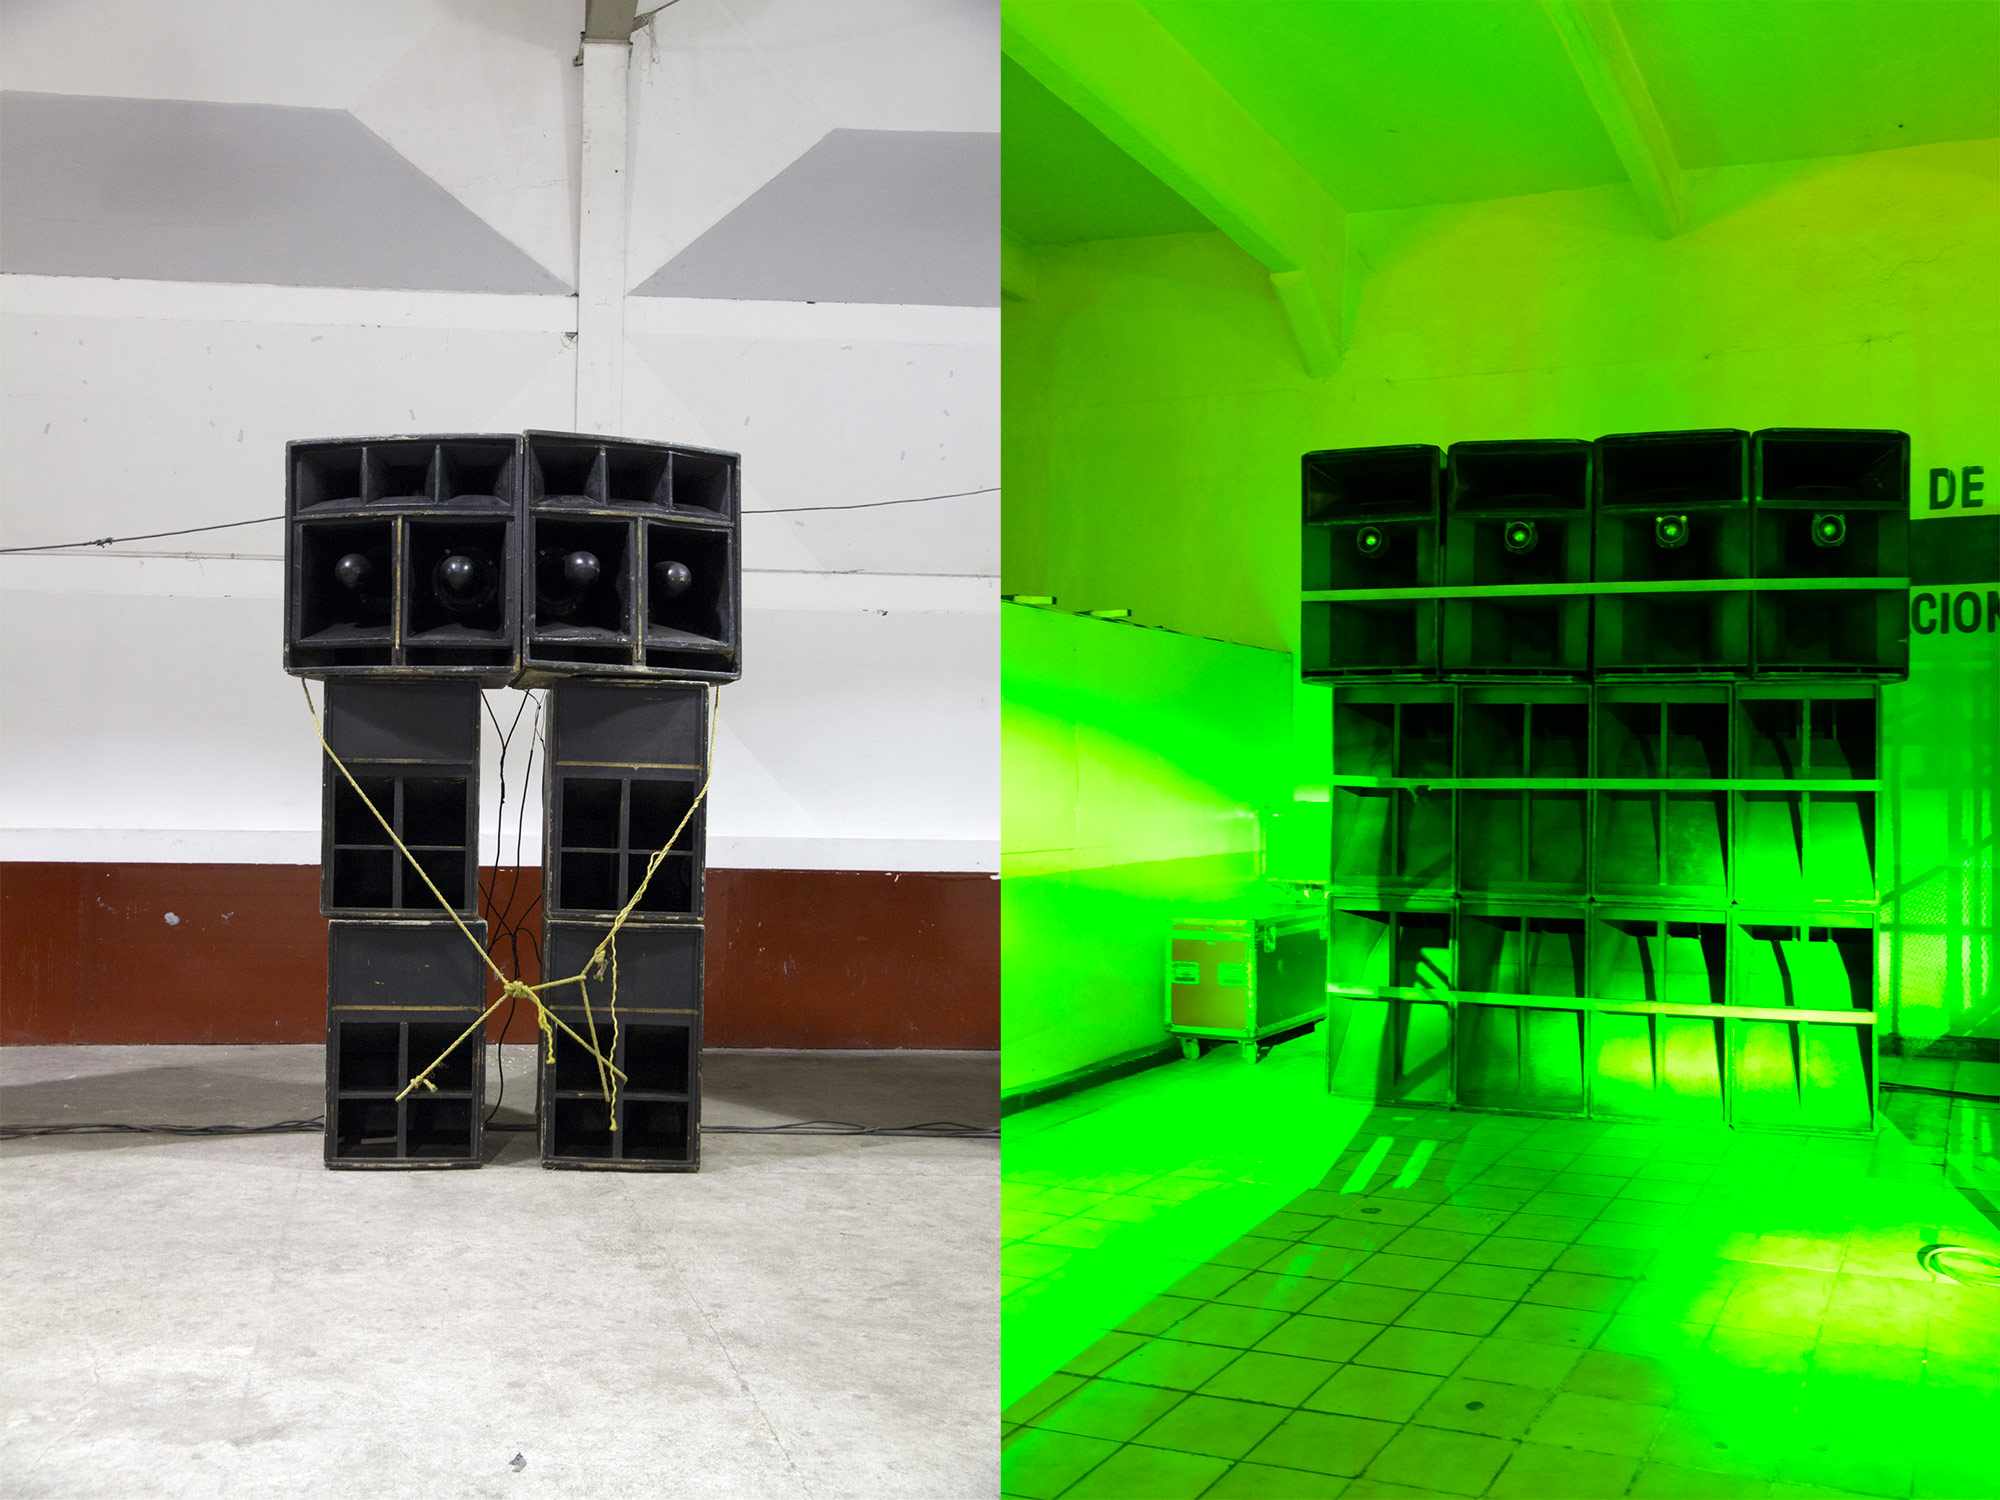 Soundsystem of Sonido Siboney at a dance in Tlalnepantla, Mexico, 2011 + Soundsystem of Sonido Samurai at a dance at the Olímpico, Pantitlán neighbourhood, Mexico City, 2018. Ph: Mirjam Wirz